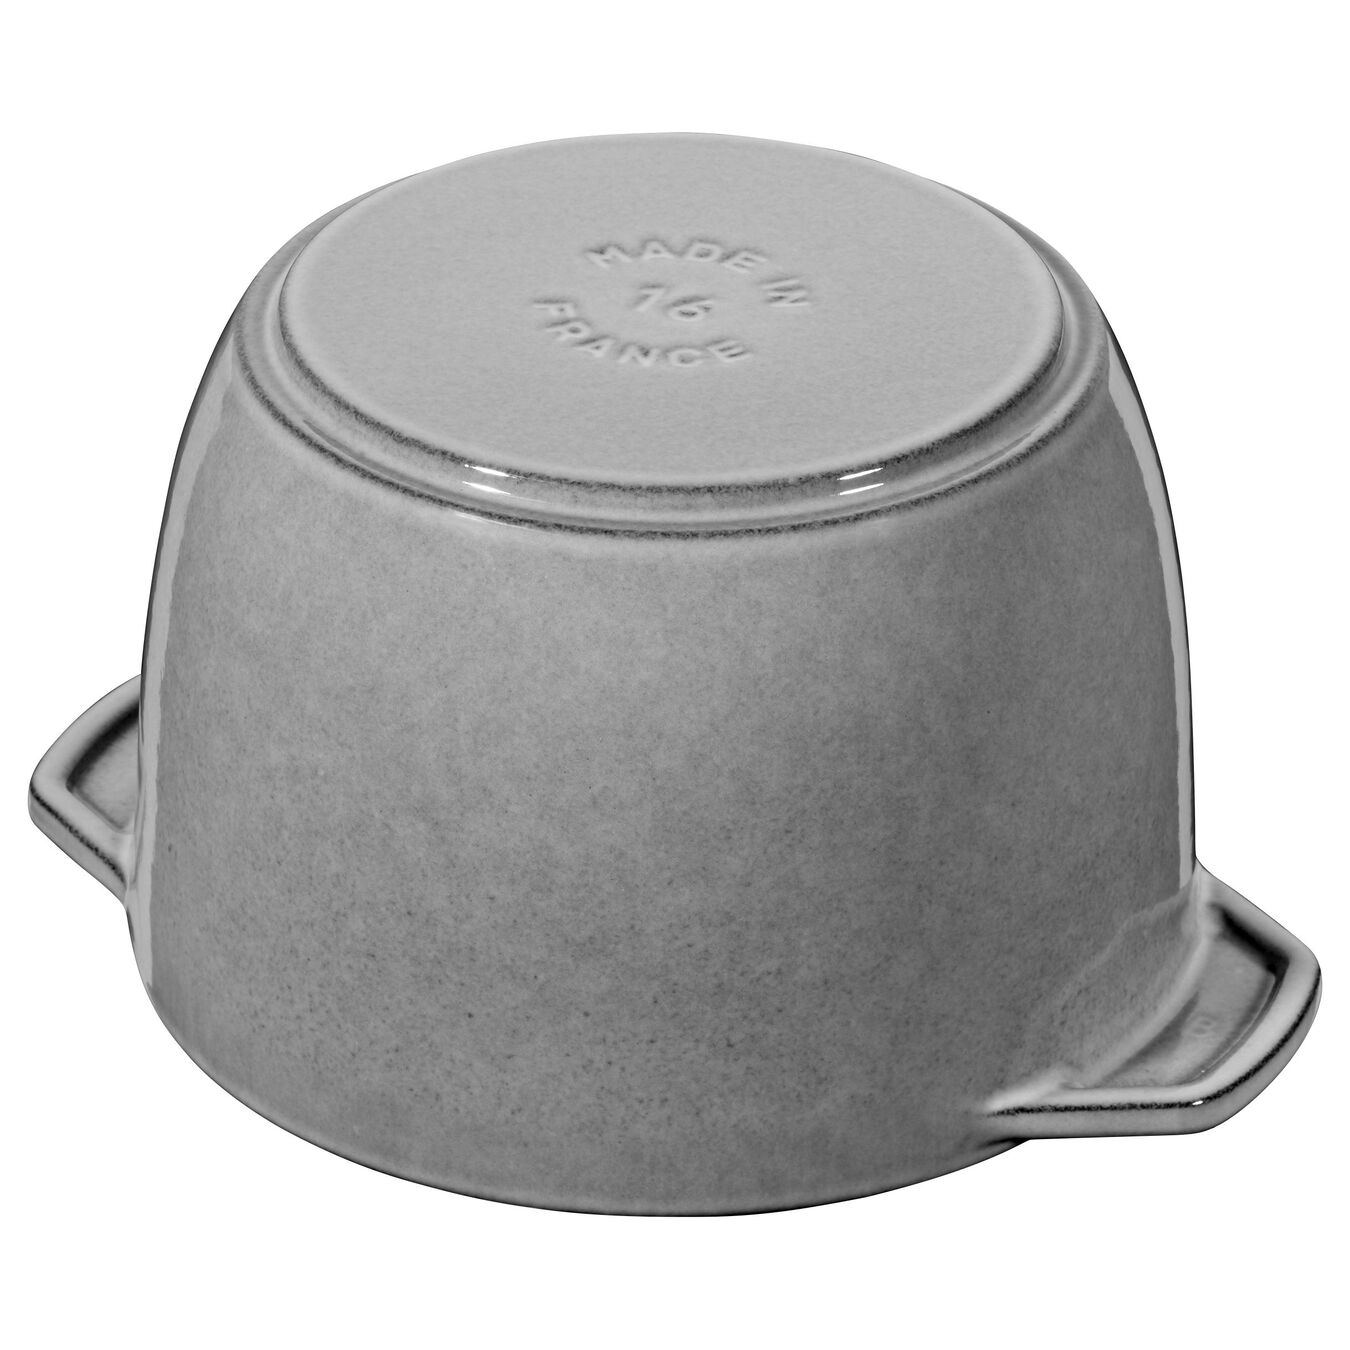 1.5 l round Rice Cocotte, graphite-grey,,large 6